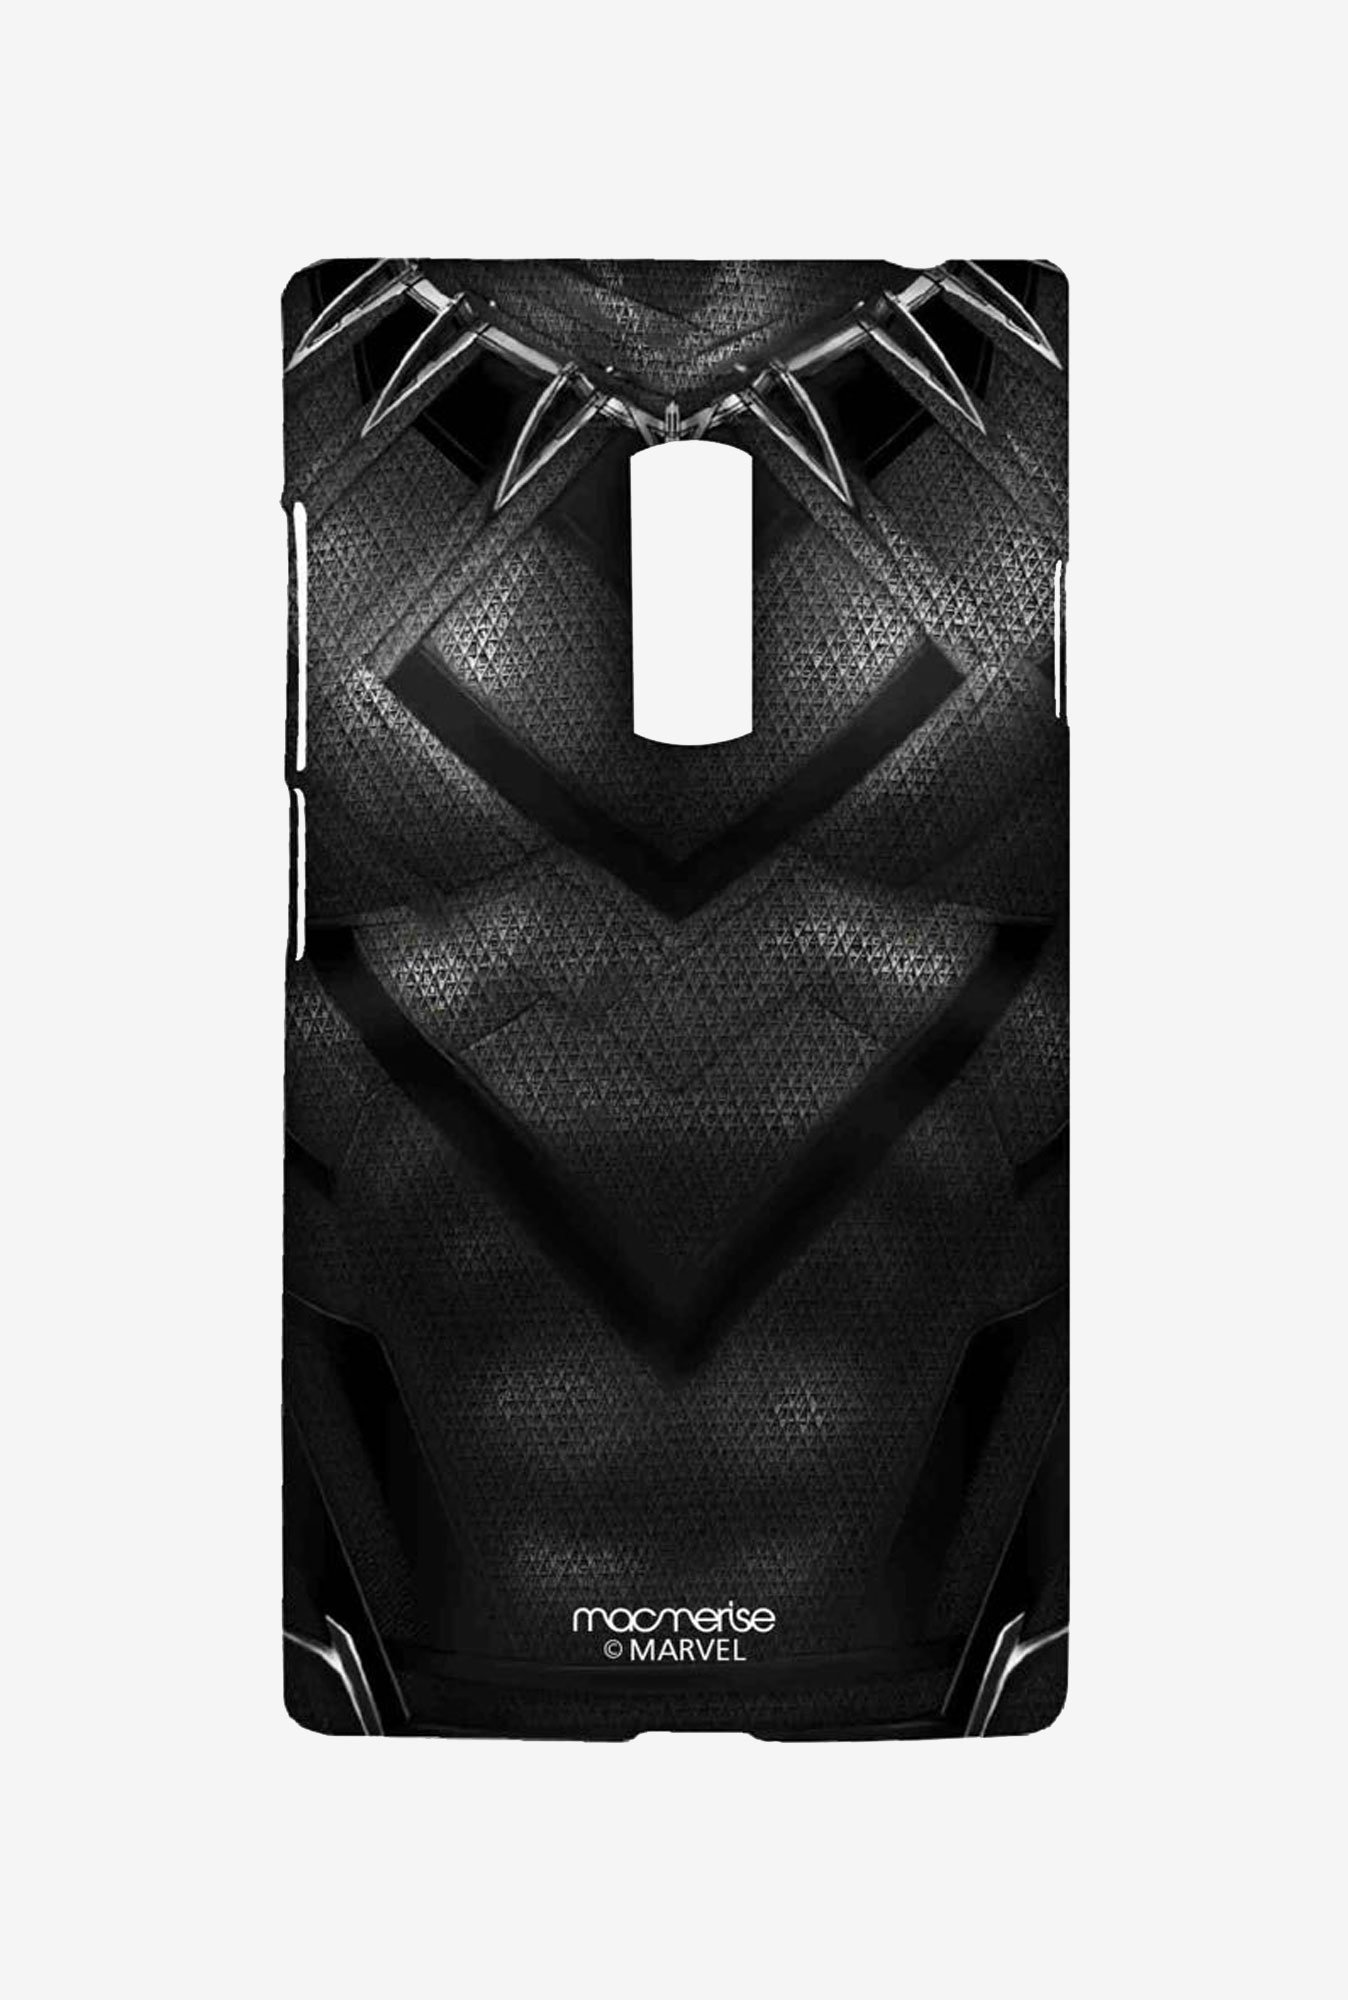 Macmerise Suit up Black Panther Sublime Case for OnePlus Two